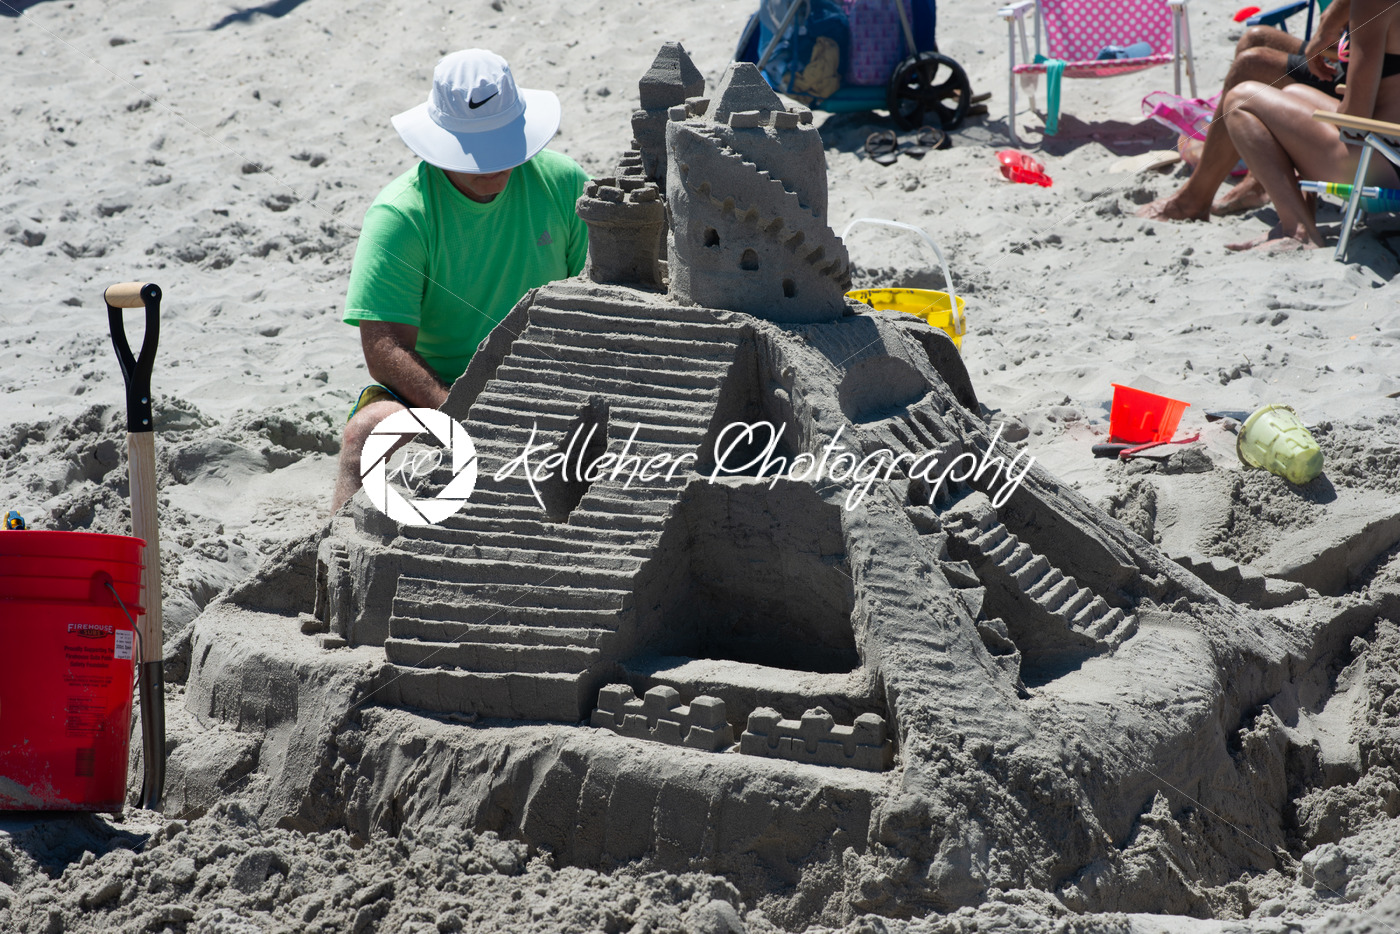 Ocean City, NJ – June 8, 2018: A lavish and large sand castle being built on the beach - Kelleher Photography Store